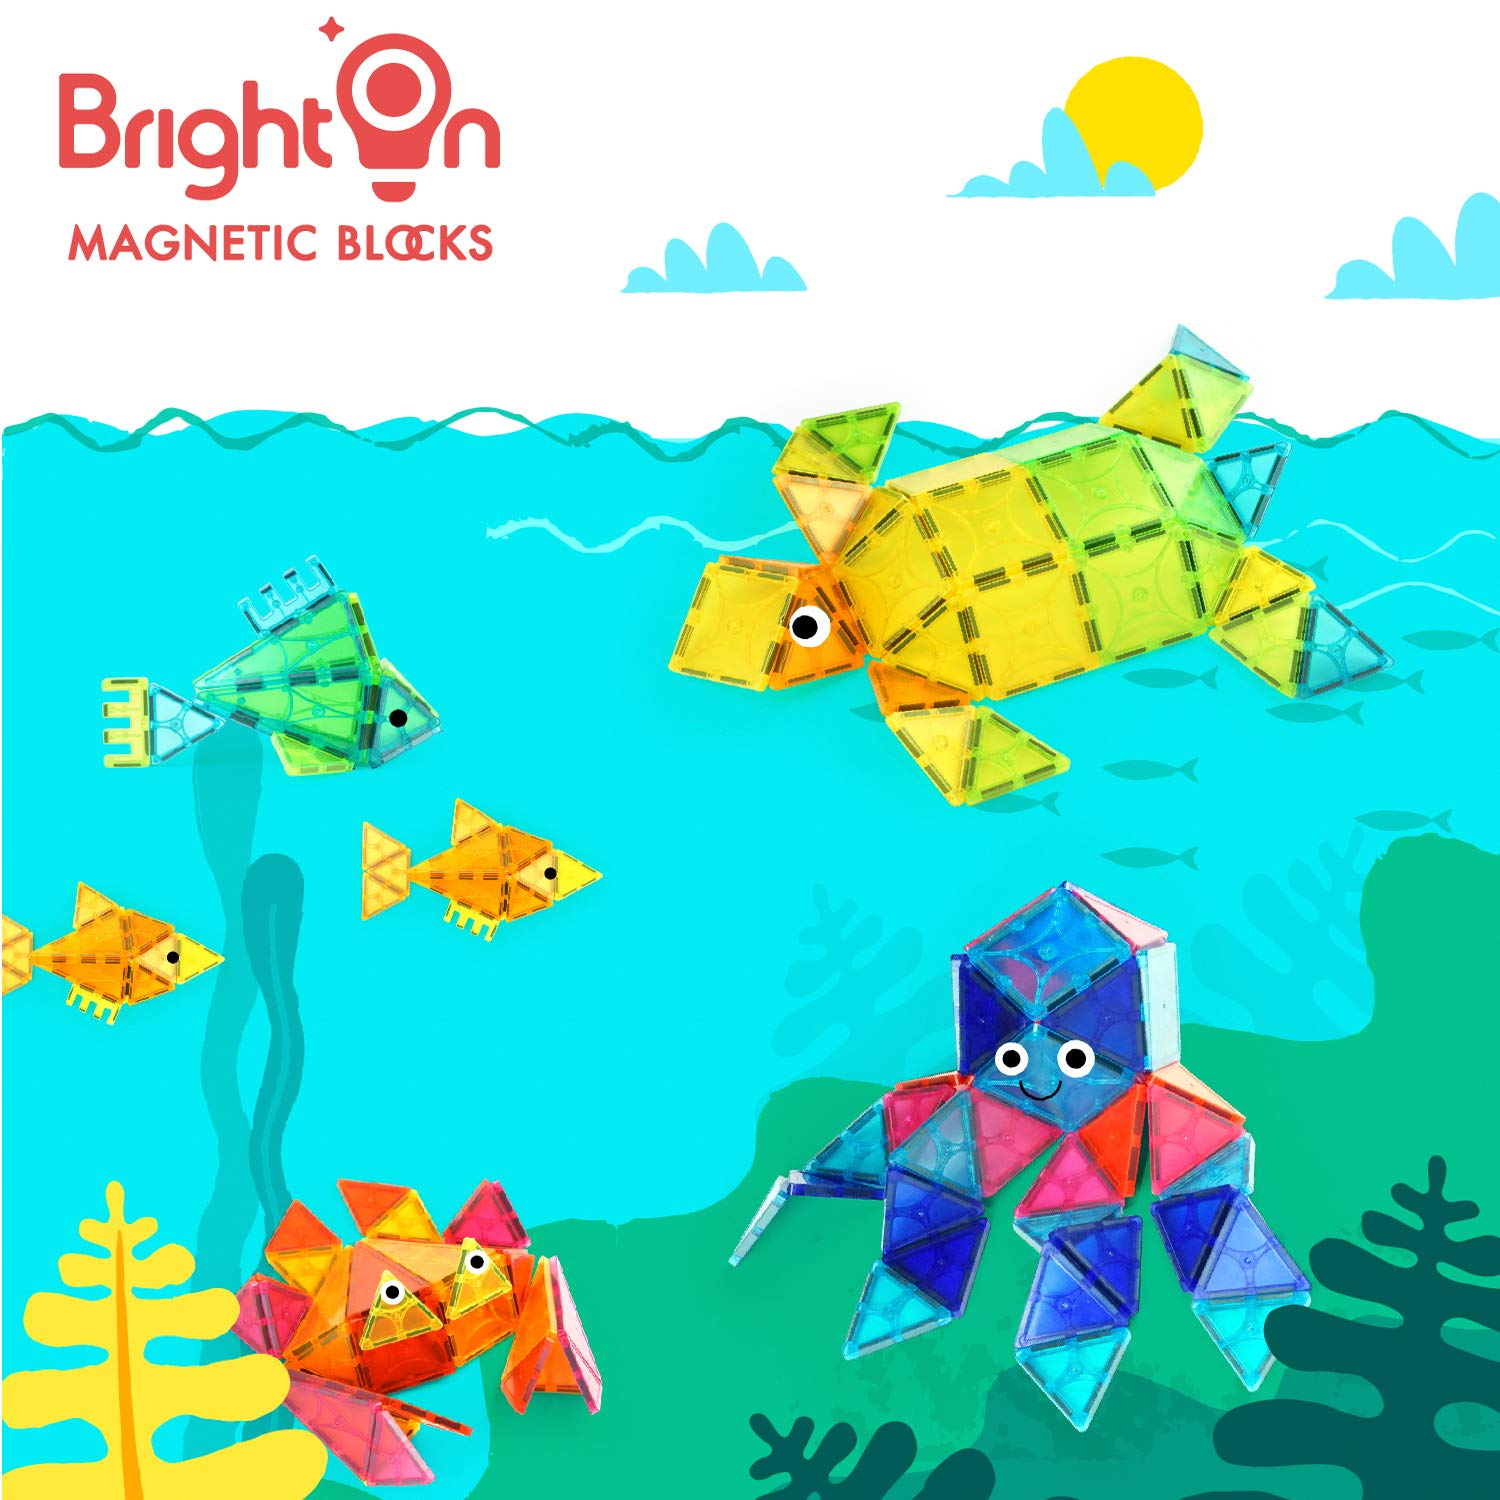 BrightOn Educational Kids Toys Magnetic Building Blocks, Creative Toys 3D Magnetic Blocks for Kids, Imagination Magnets Building Tiles for Children 105Pcs by BrightOn (Image #1)